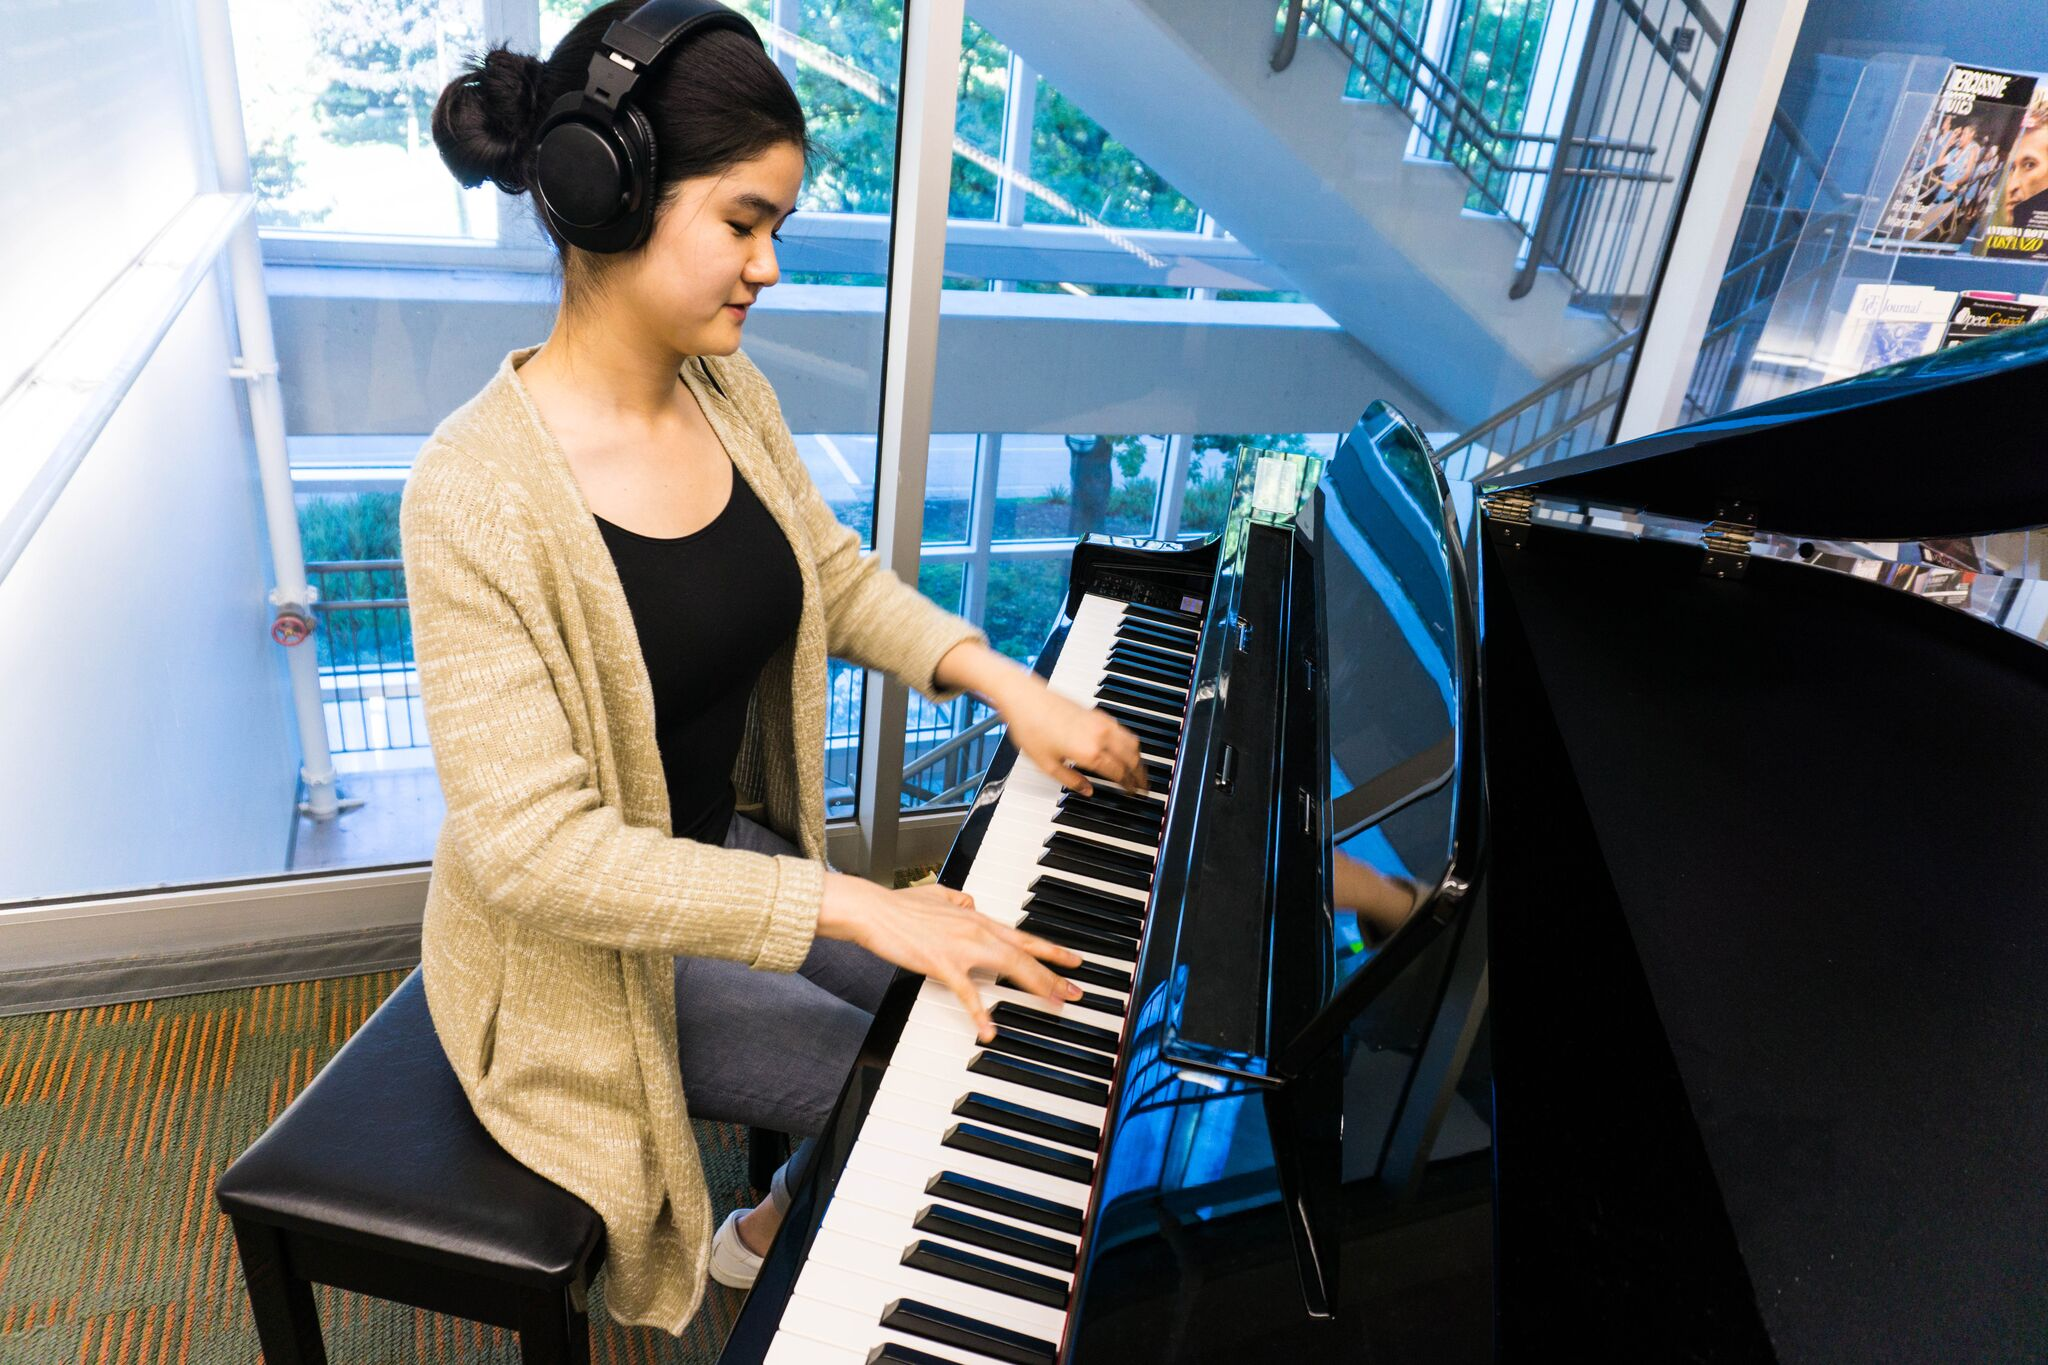 BMus student Serina Mui plays the new piano in the Music, Art and Architecture Library. The instrument is a gift from Tom Lee Music. Credit: UBC Library Communications